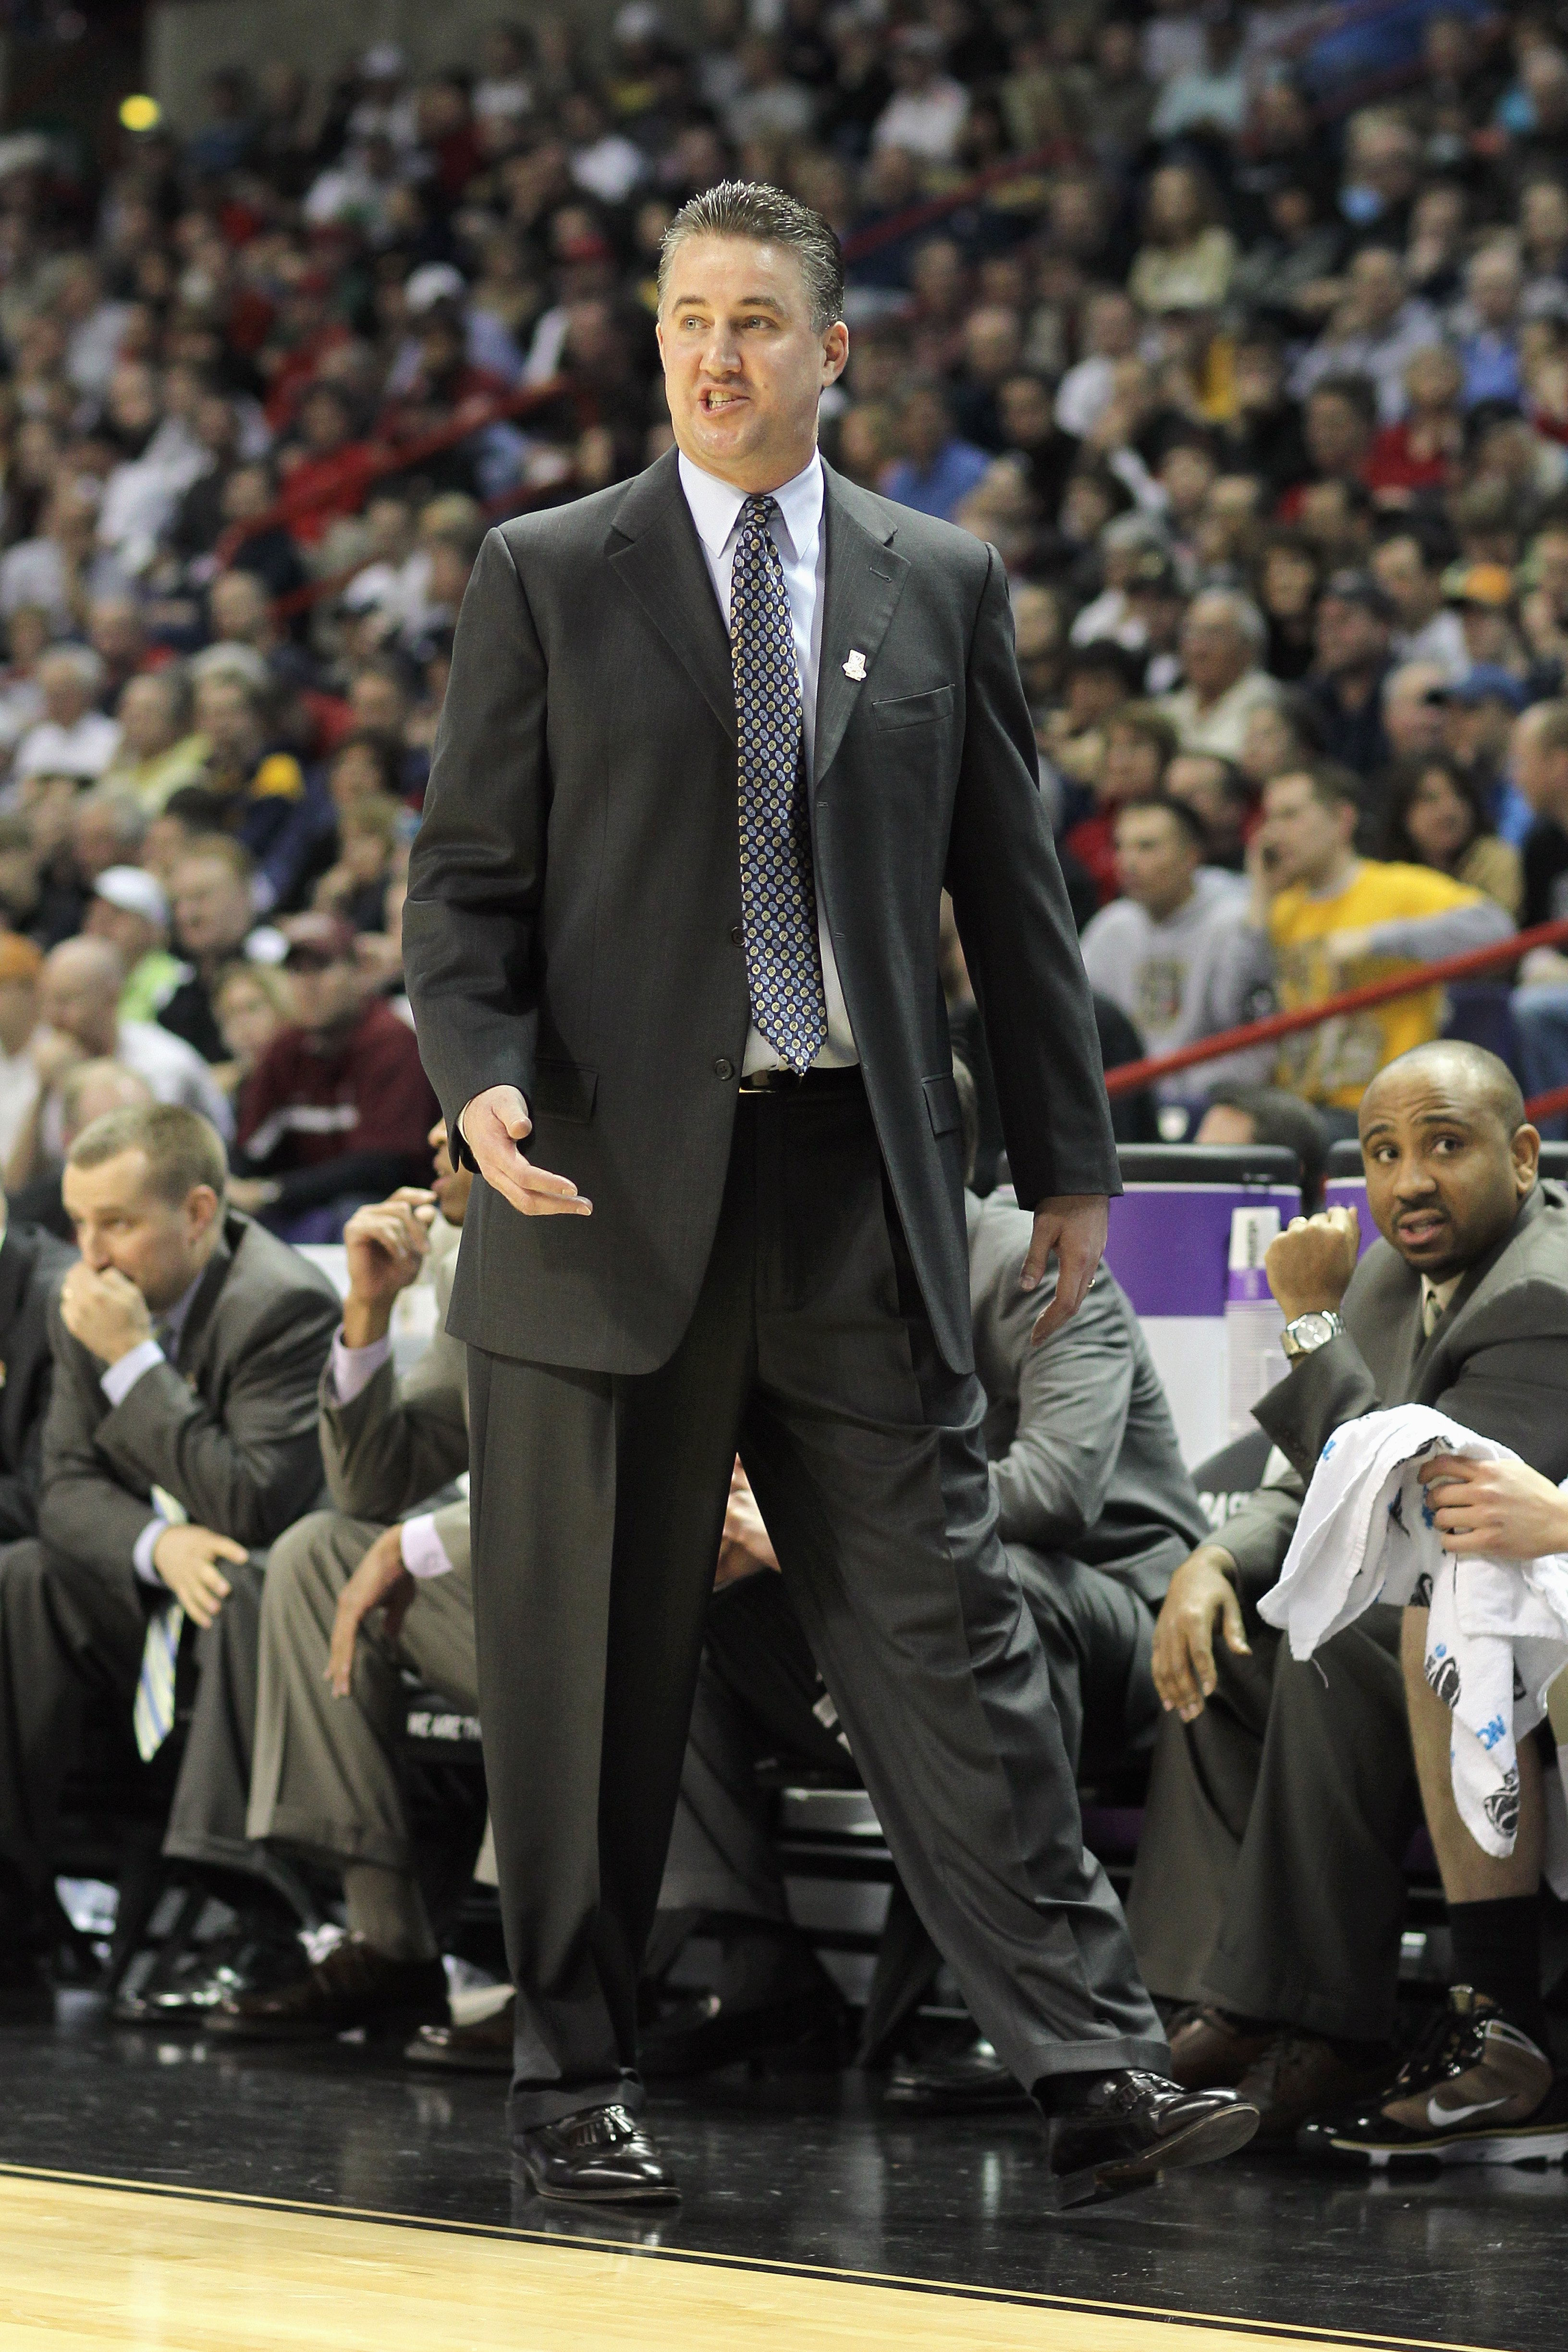 SPOKANE,WA - MARCH 21: Head coach Matt Painter of the Purdue Boilermakers walks on the sidelines against the Texas A&M Aggies during the second round of the 2010 NCAA men's basketball tournament at the Spokane Arena on March 21, 2010 in Spokane, Washingto